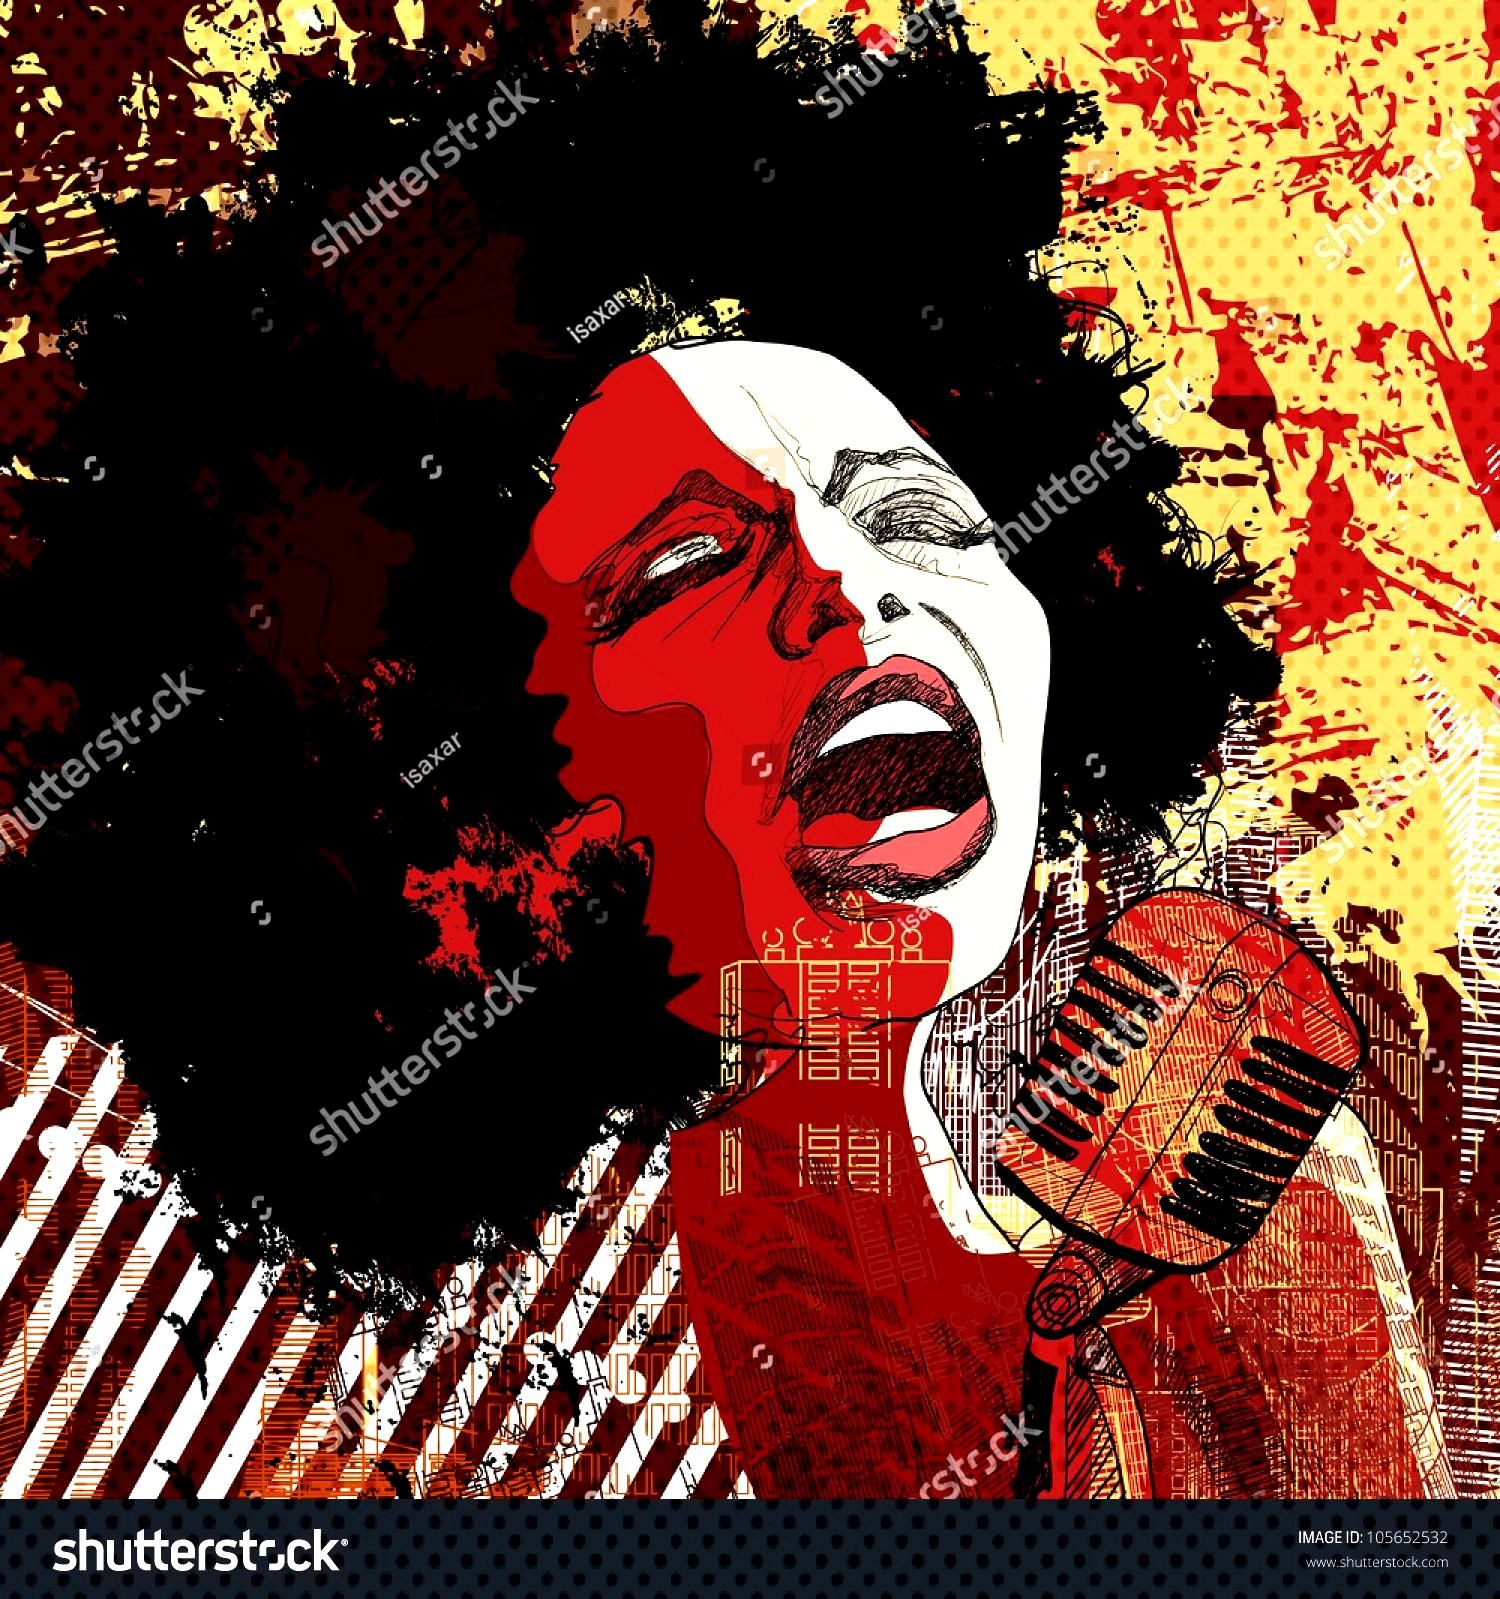 Music Jazz - afro american jazz singer on grunge background - vector illustration ,